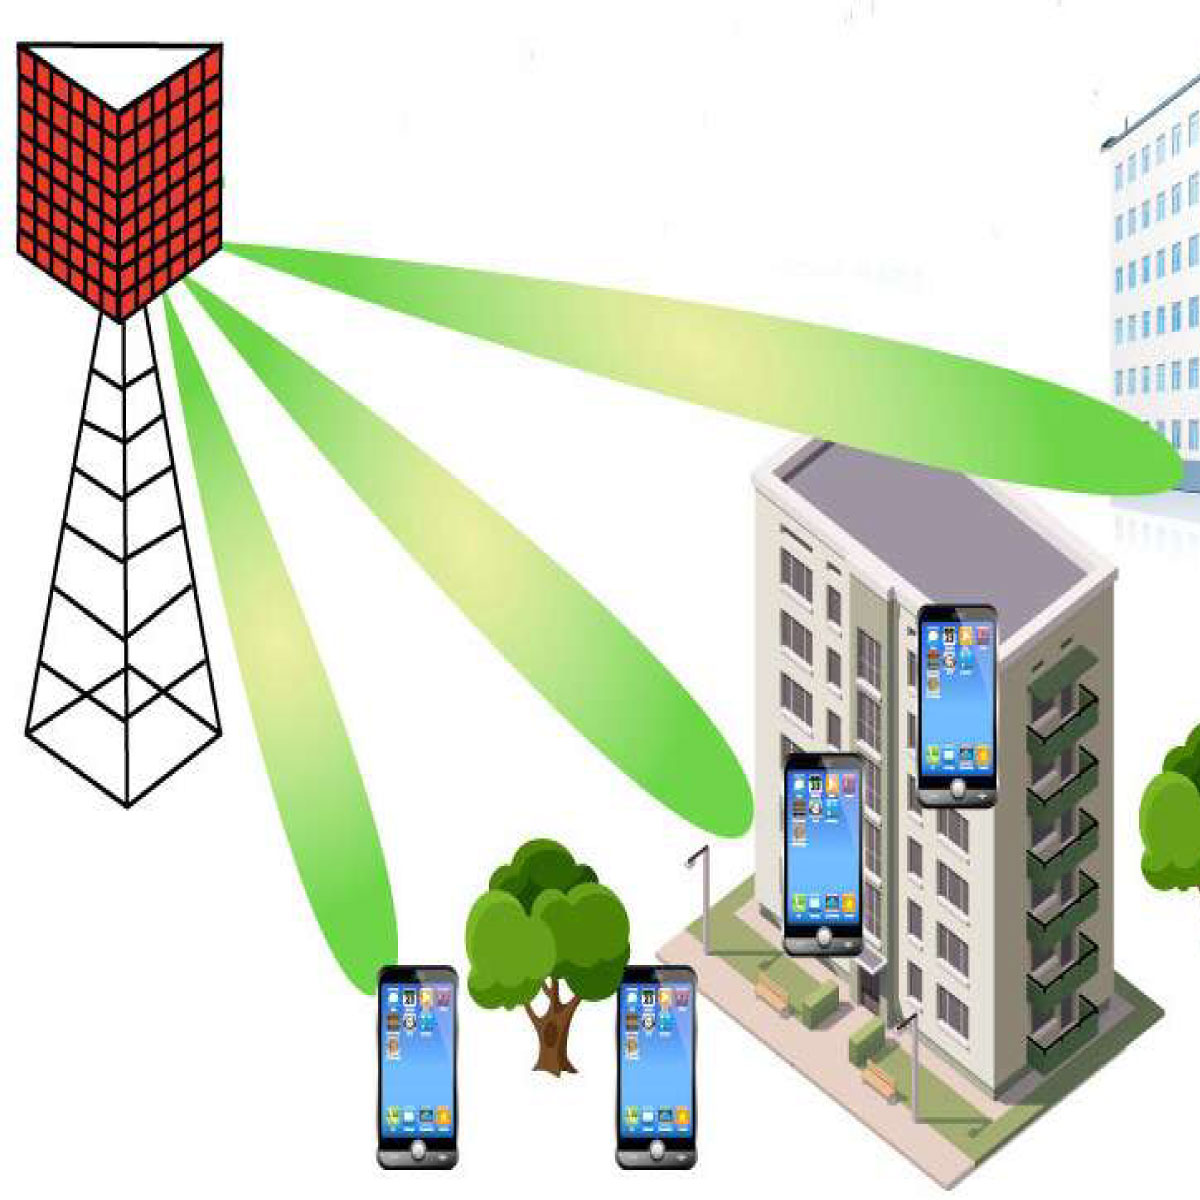 Performance Evaluation for 5G NR Based MM Wave MIMO Systems